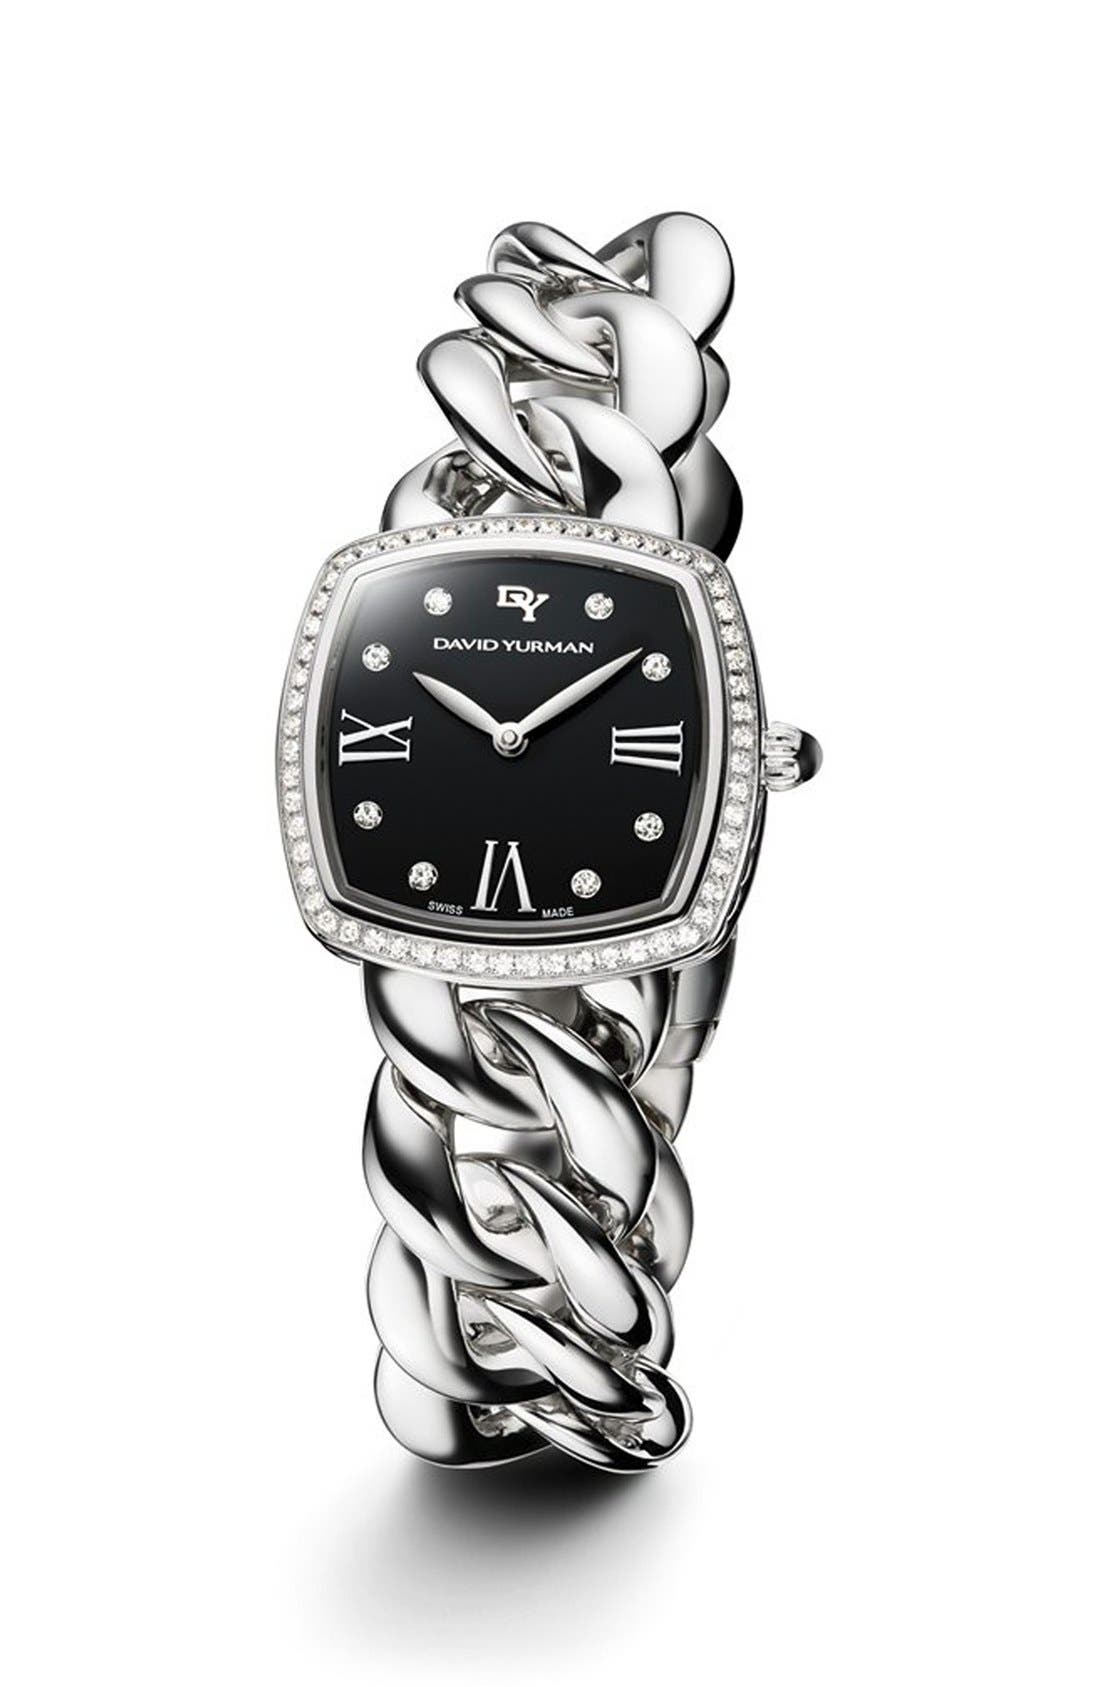 DAVID YURMAN 'Albion' 27mm Stainless Steel Quartz Watch with Diamonds, Main, color, STAINLESS STEEL